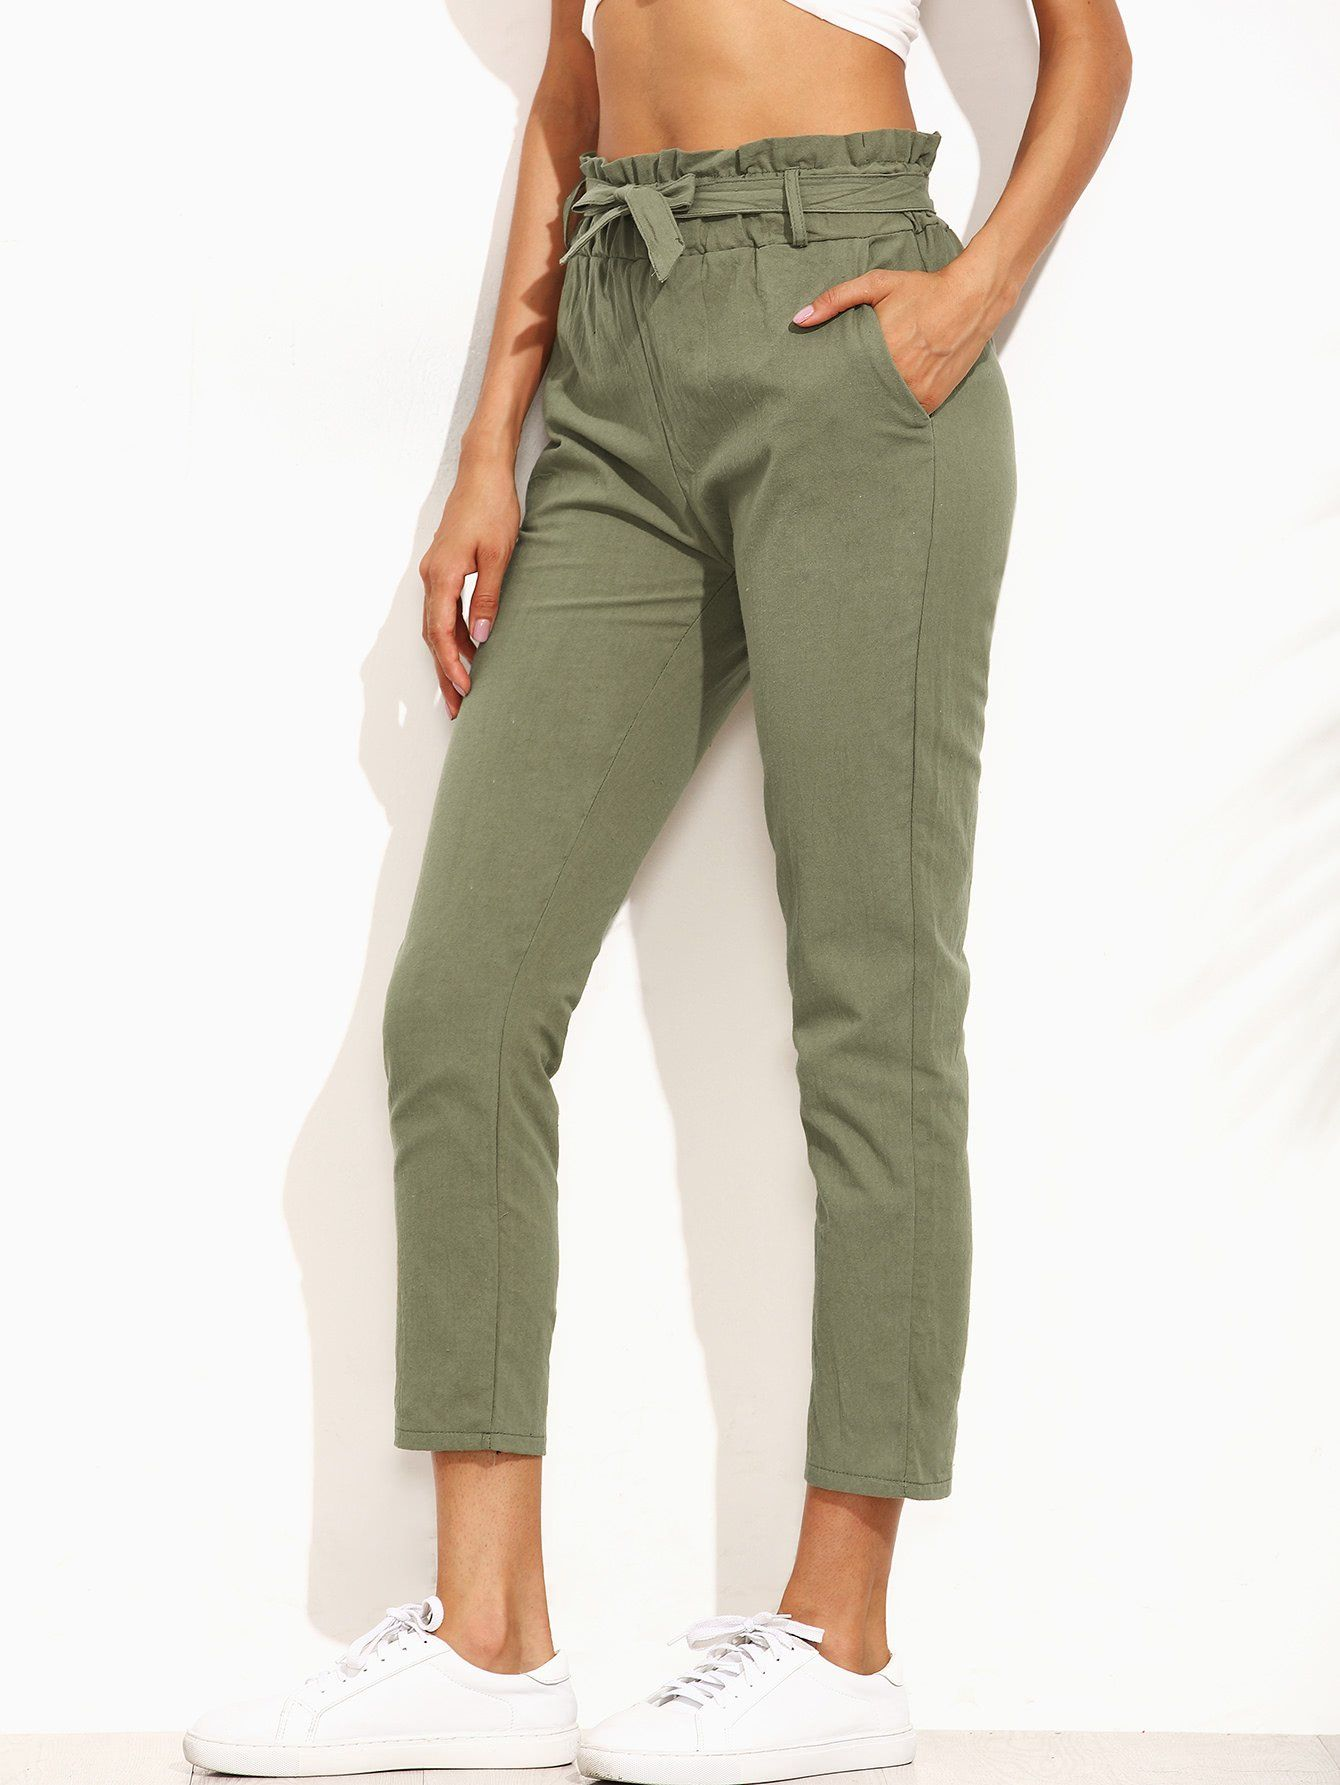 6ffc8b651f Frill Tie Waist Pants in 2019 | Girl boss wardrobe | Army green ...